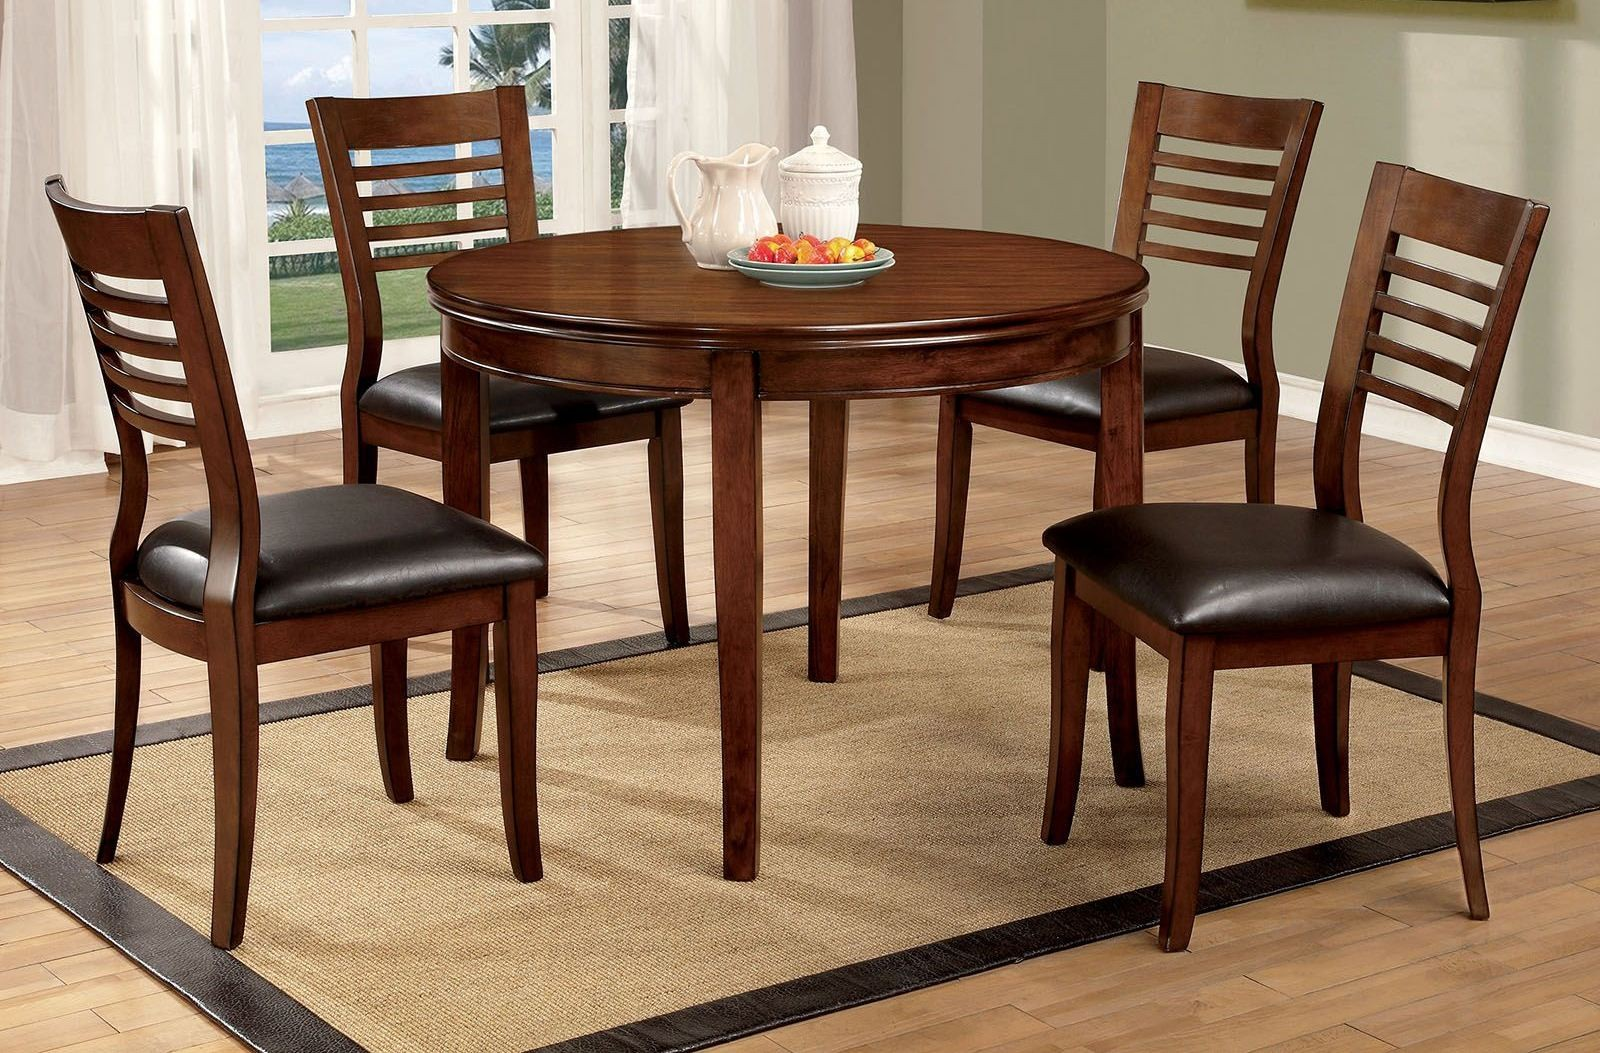 Dwight i gray 48 round dining room set cm3988rt 48 for Dining room tables 48 round